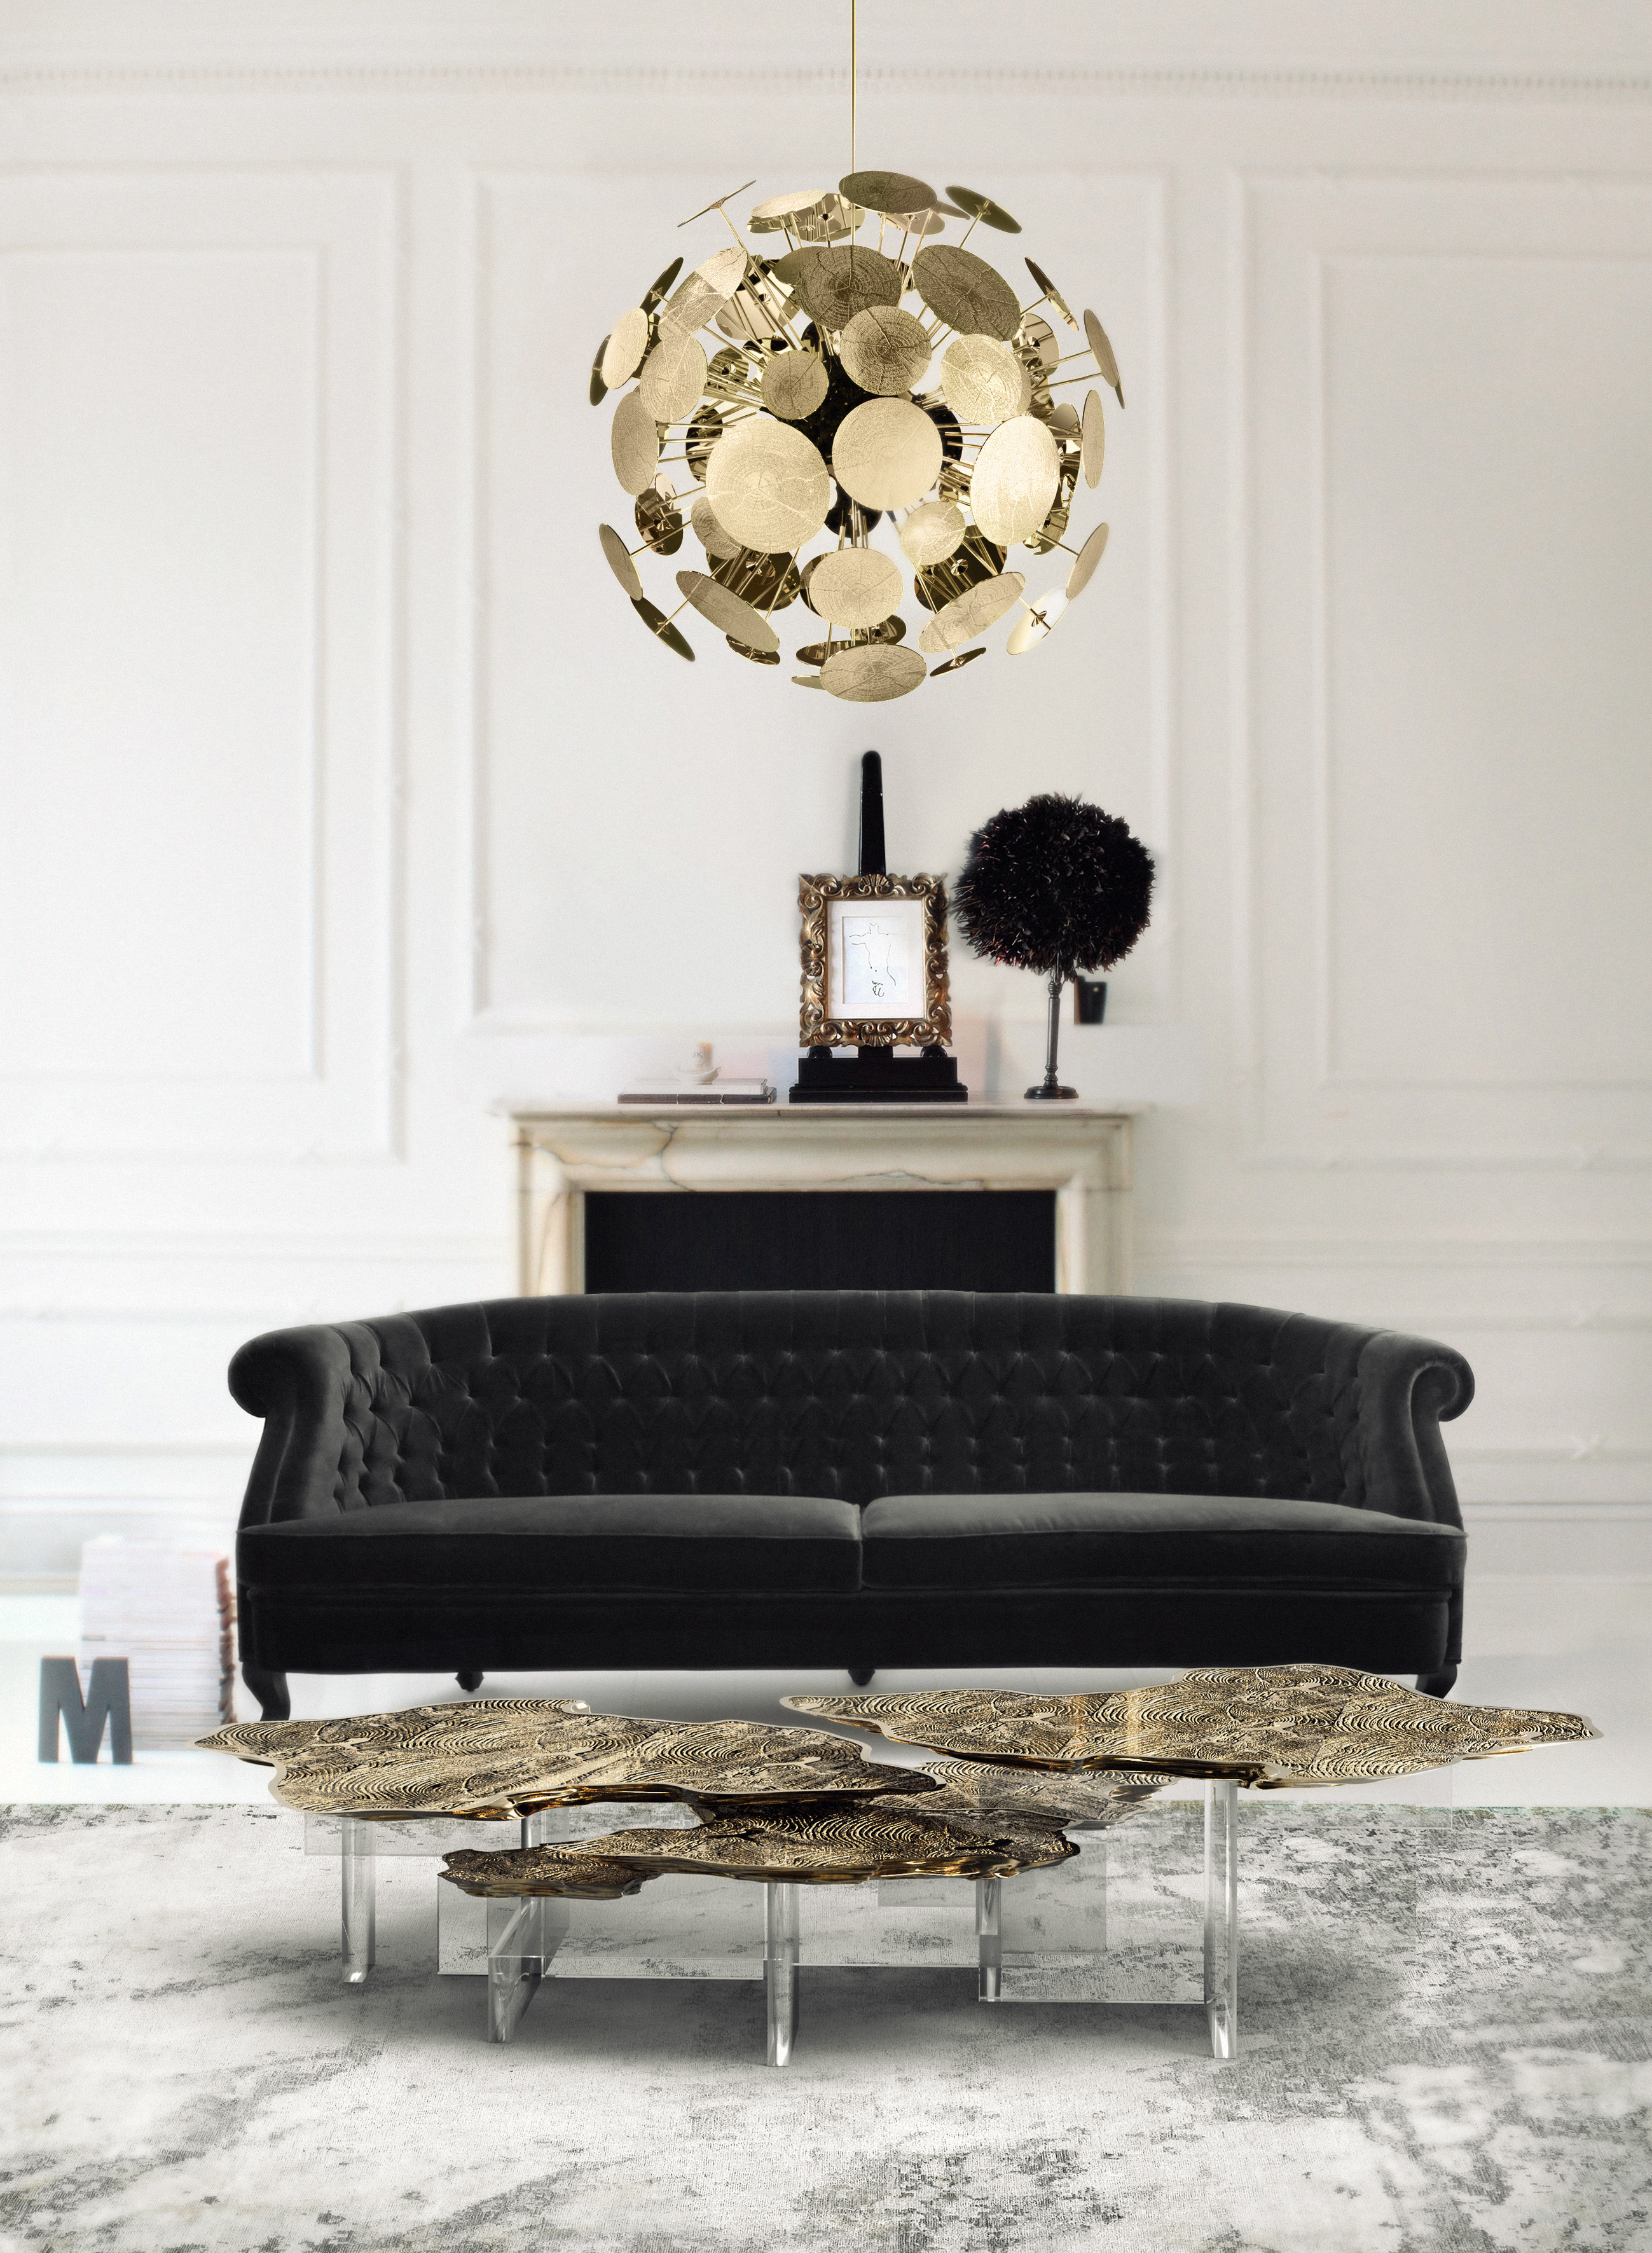 A Selection of 25 Sofas and Armchairs You Must See modern sofas and armchairs A Selection of 25 Modern Sofas and Armchairs You Must See A Selection of 25 Modern Sofas You Must See 11